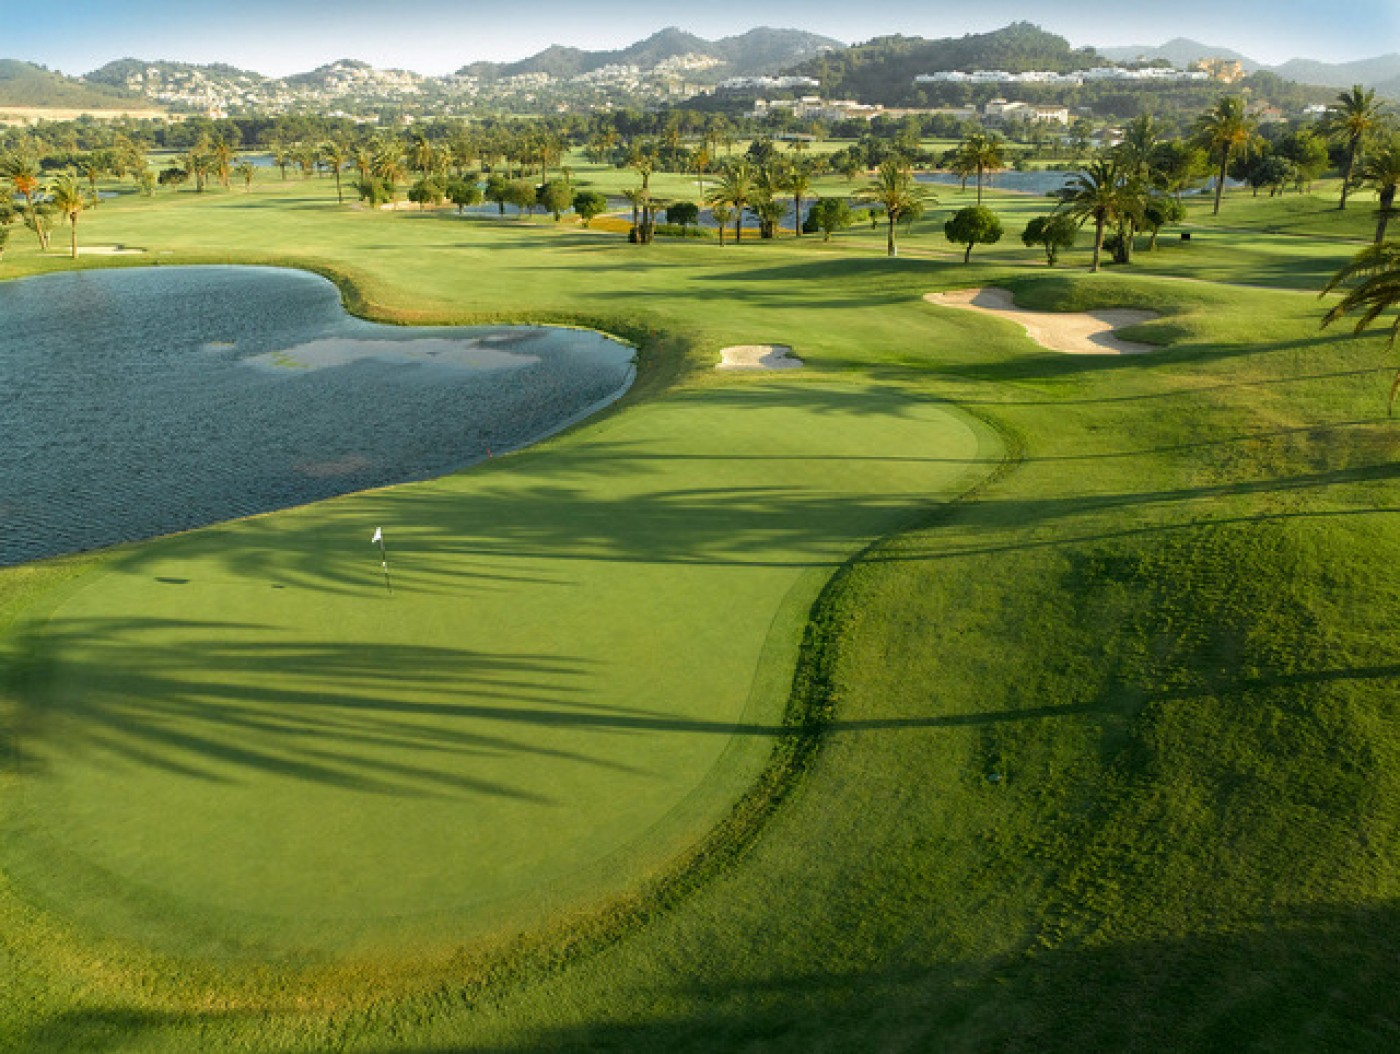 La Manga Club Golf Resort